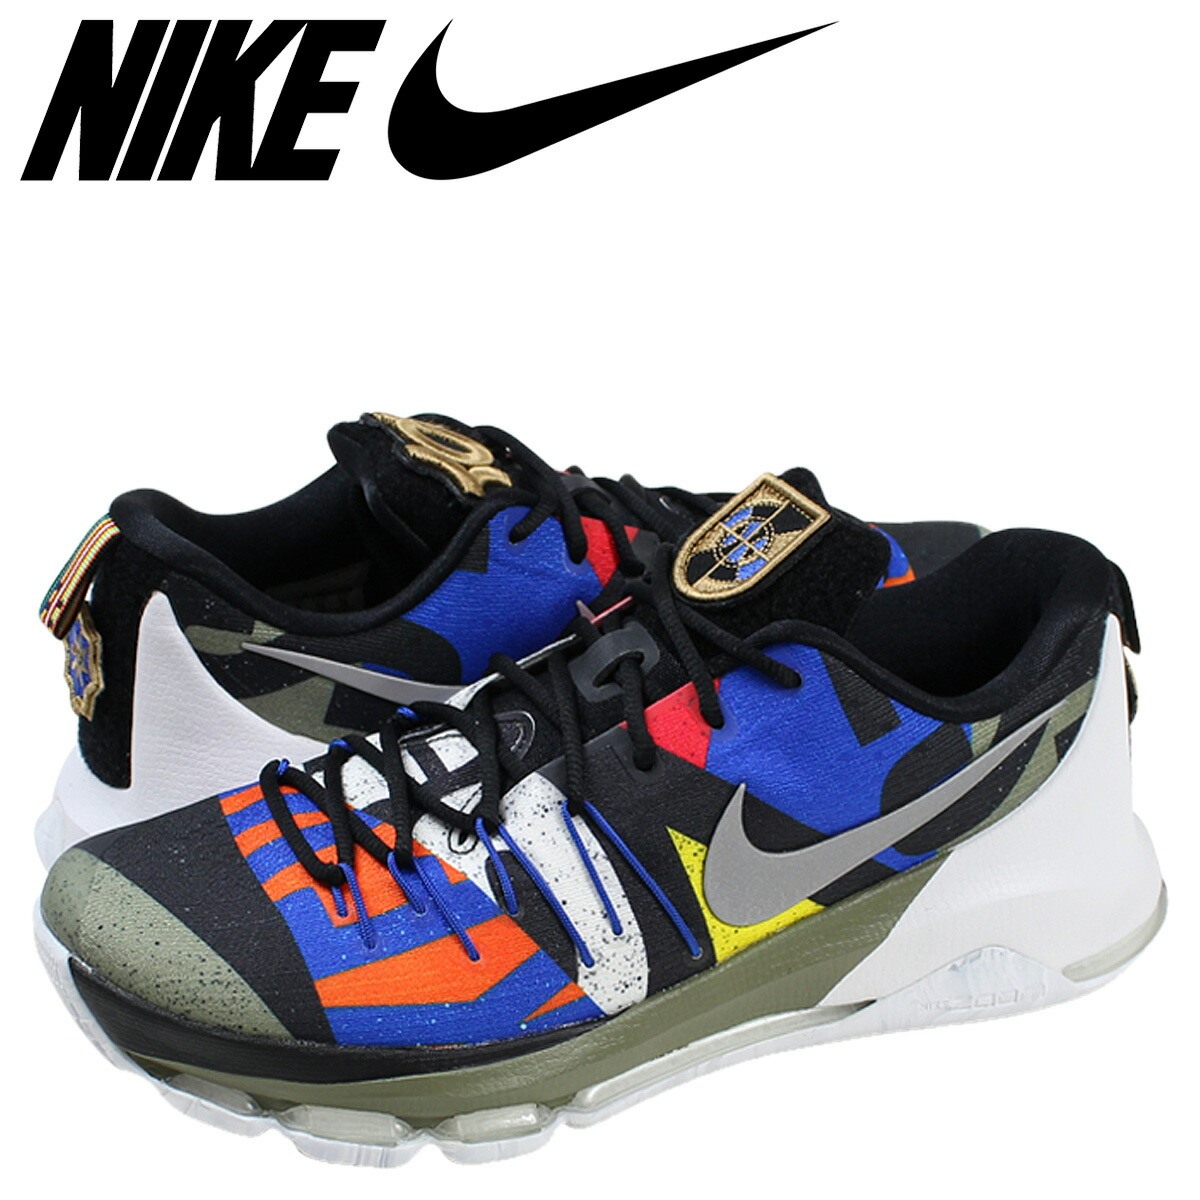 kd sneakers men Kevin Durant shoes on sale